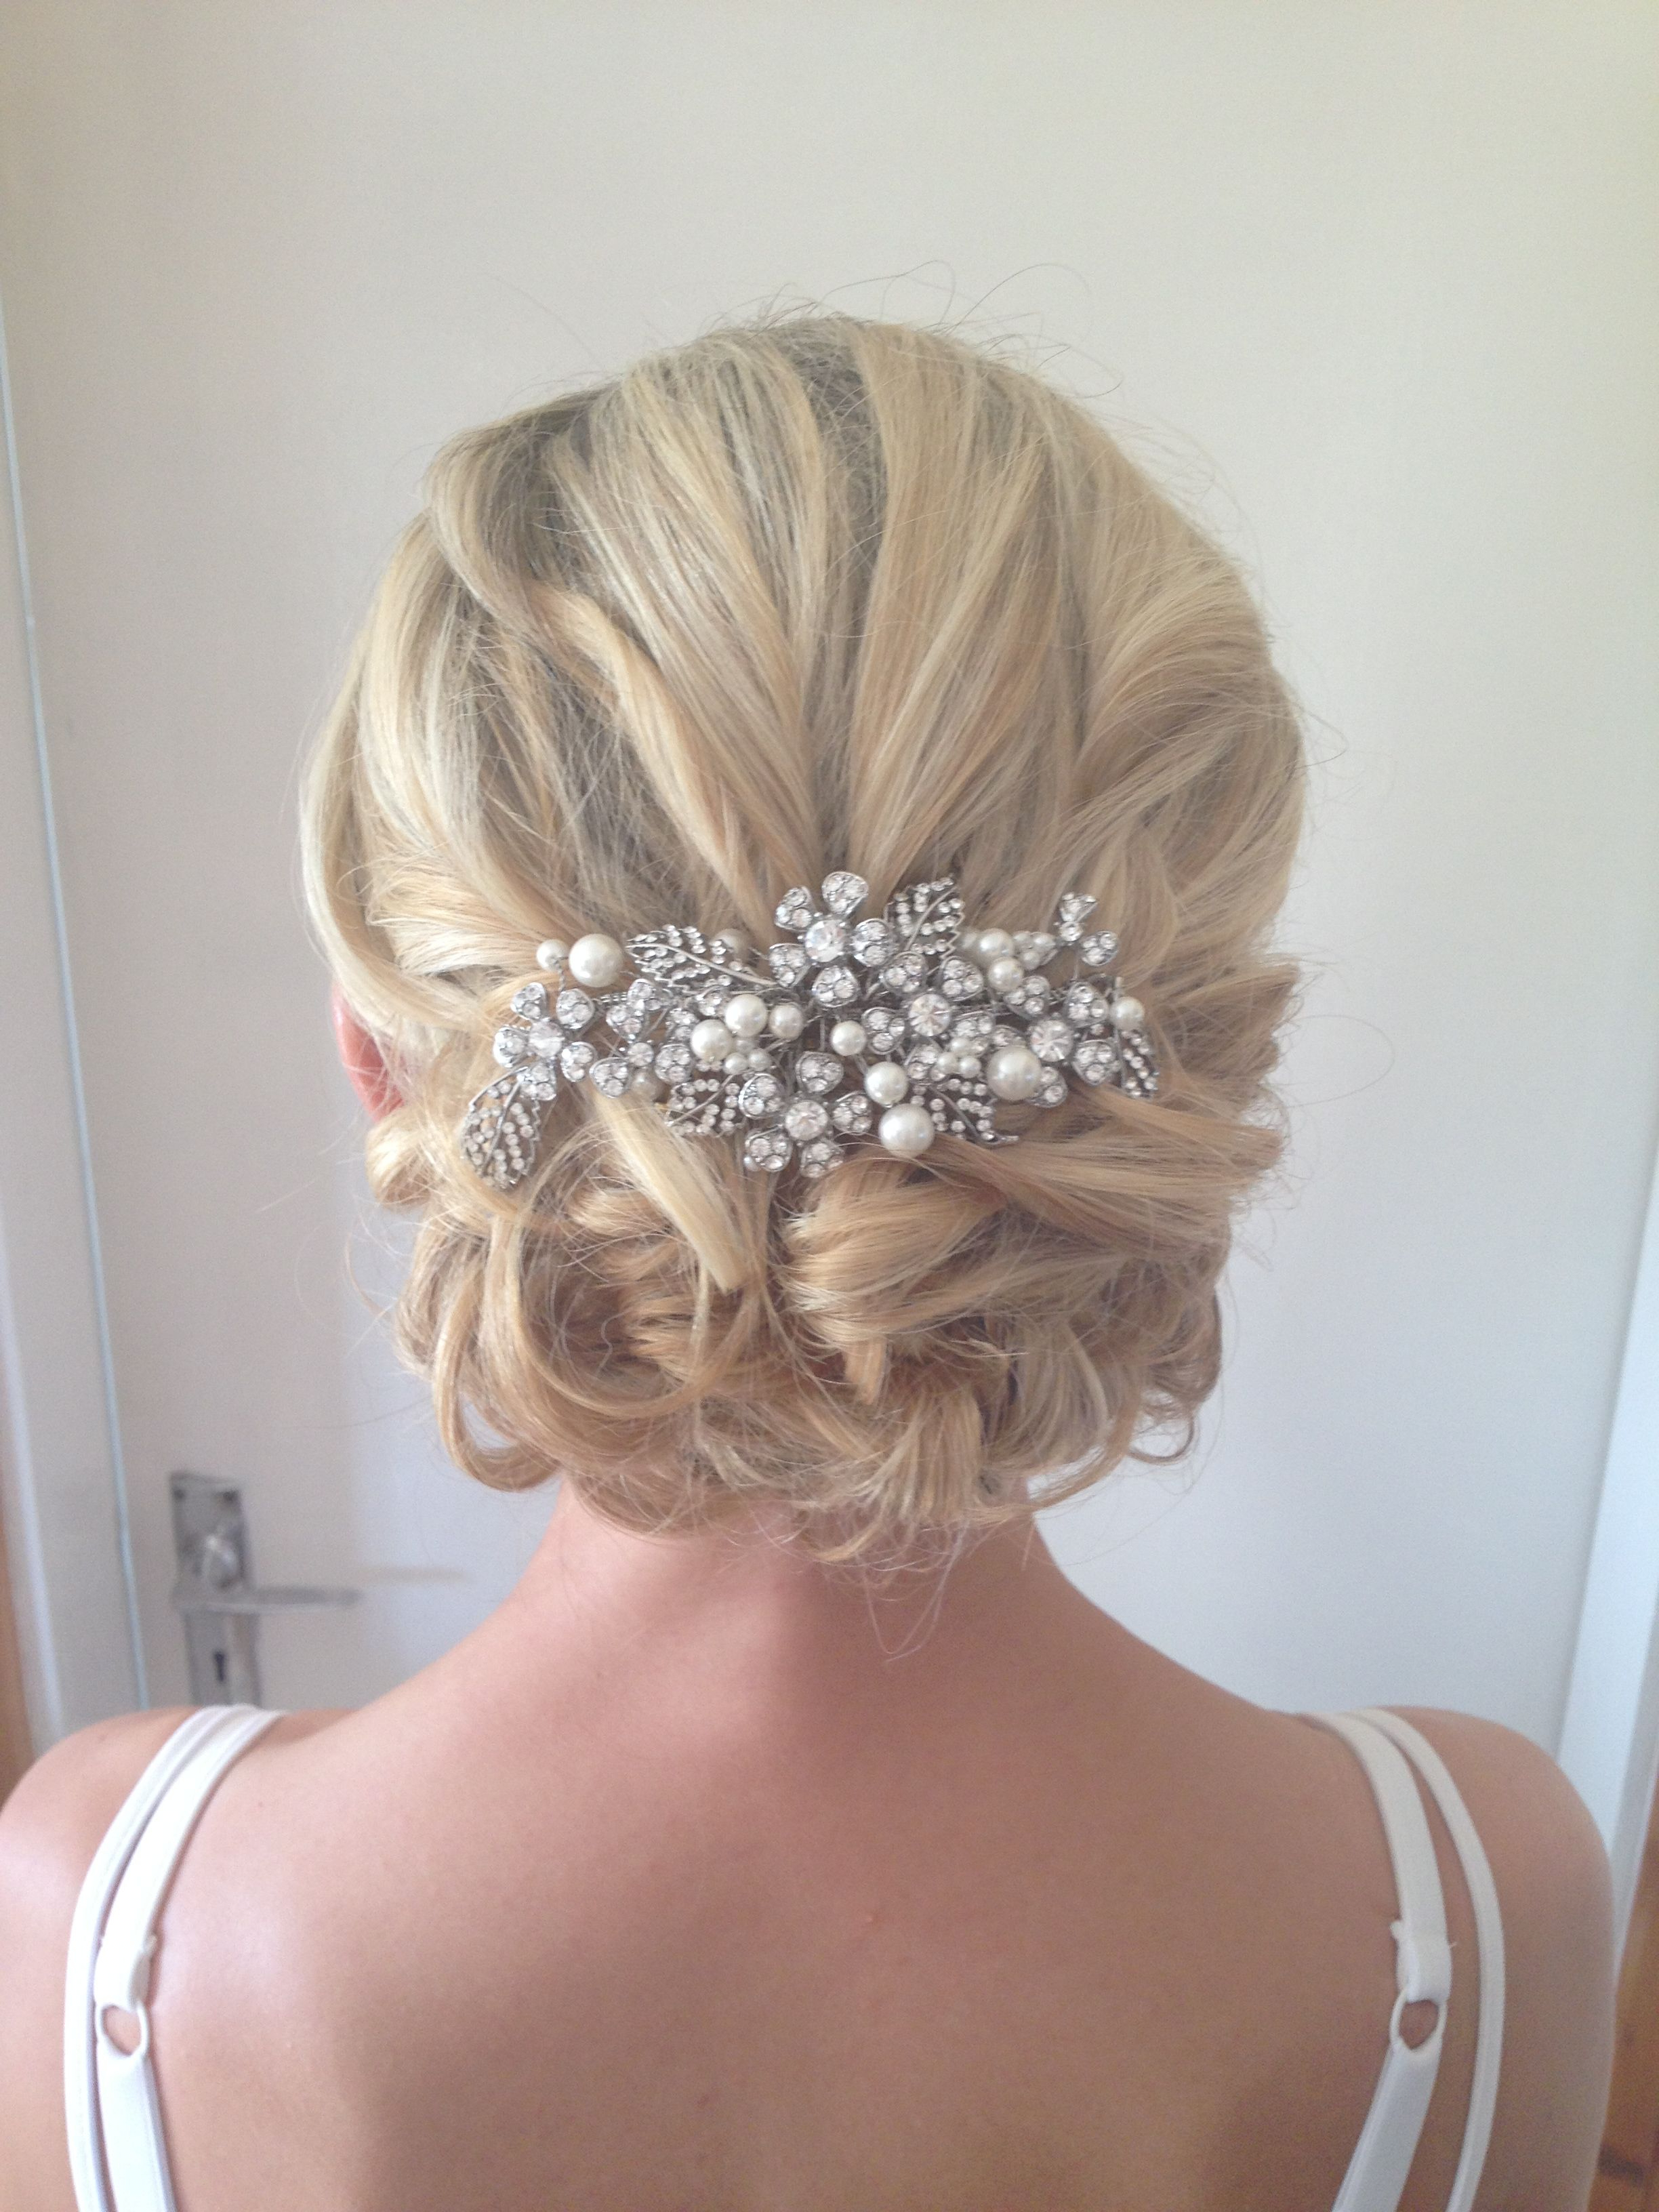 Favorite Pulled Back Half Updo Bridal Hairstyles With Comb For Wedding Hairstyles In (View 13 of 20)